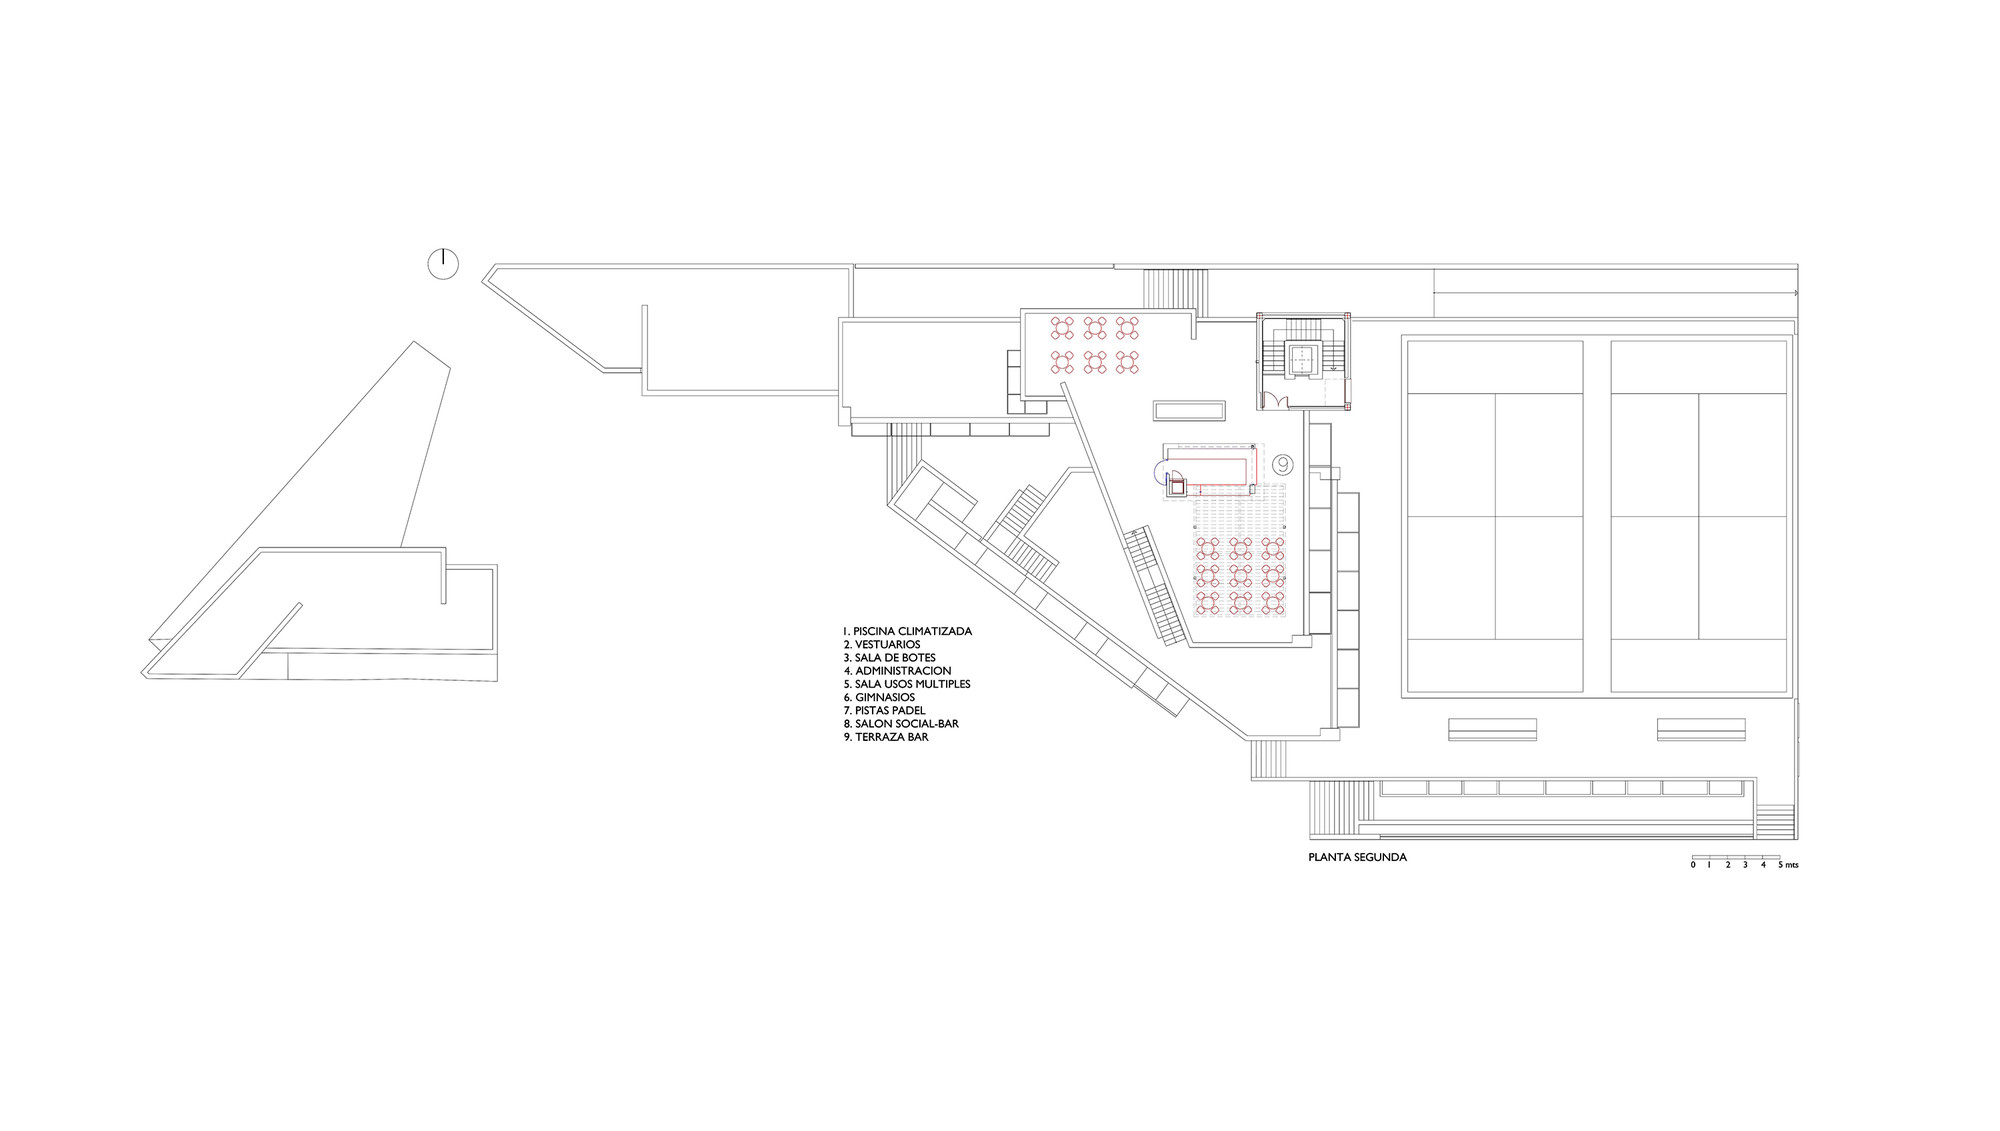 gallery of circulo mercantil industrial sports center manuel circulo mercantil industrial sports center second floor plan